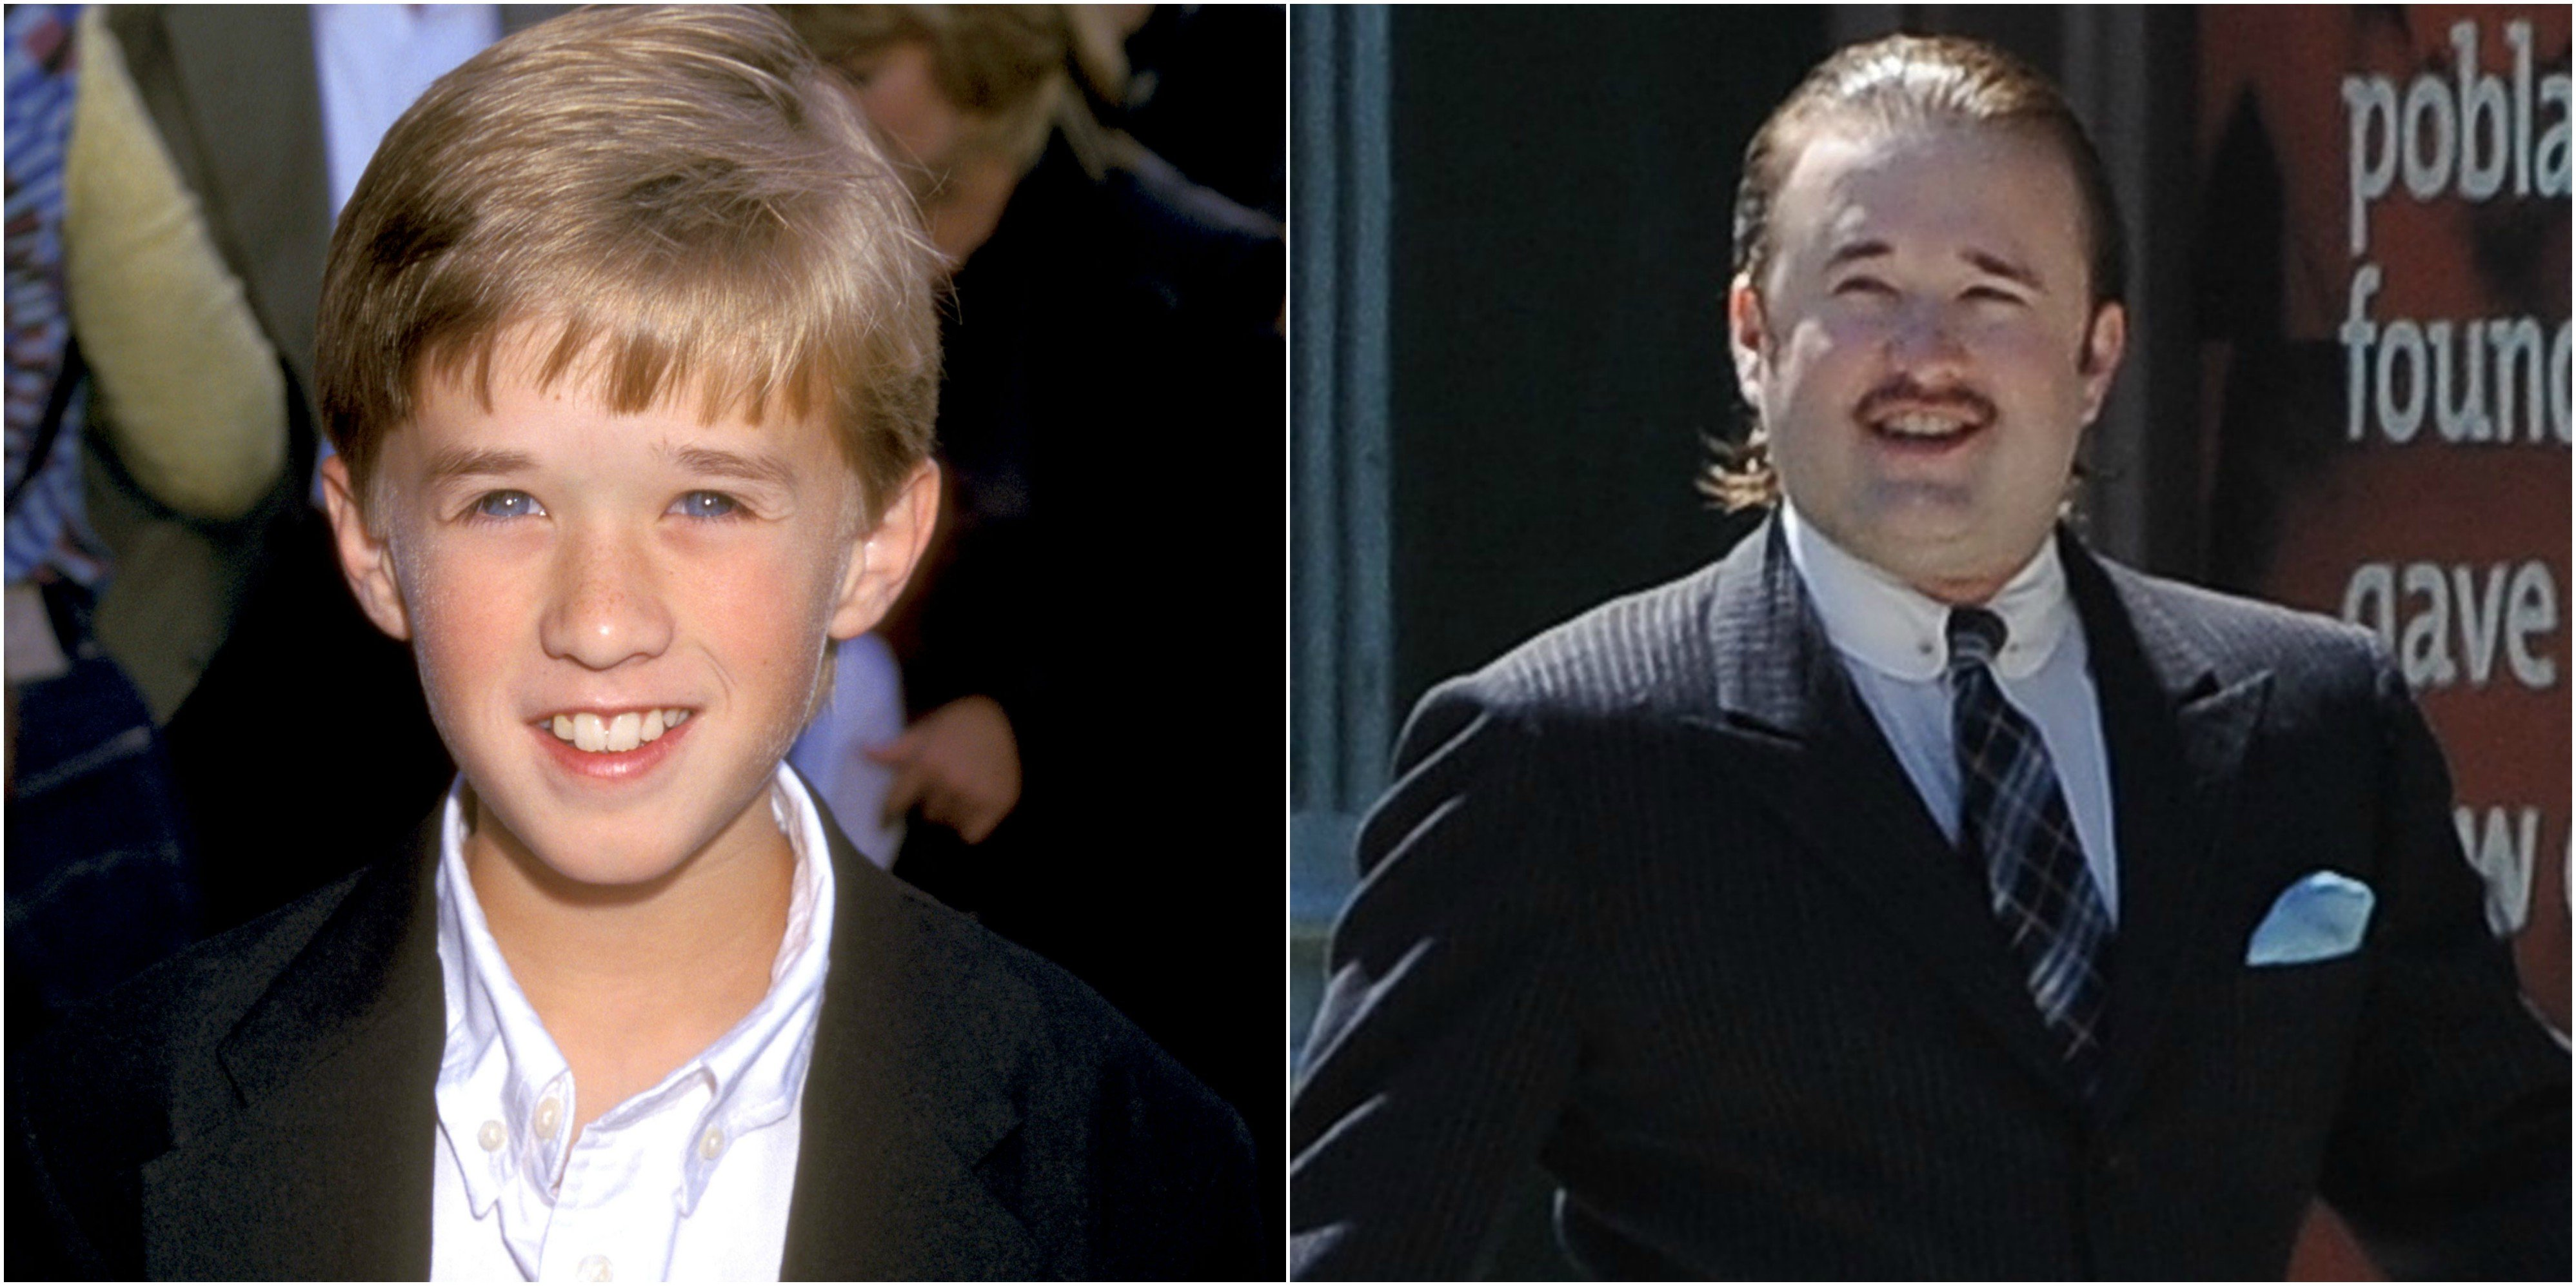 haley joel osment niño